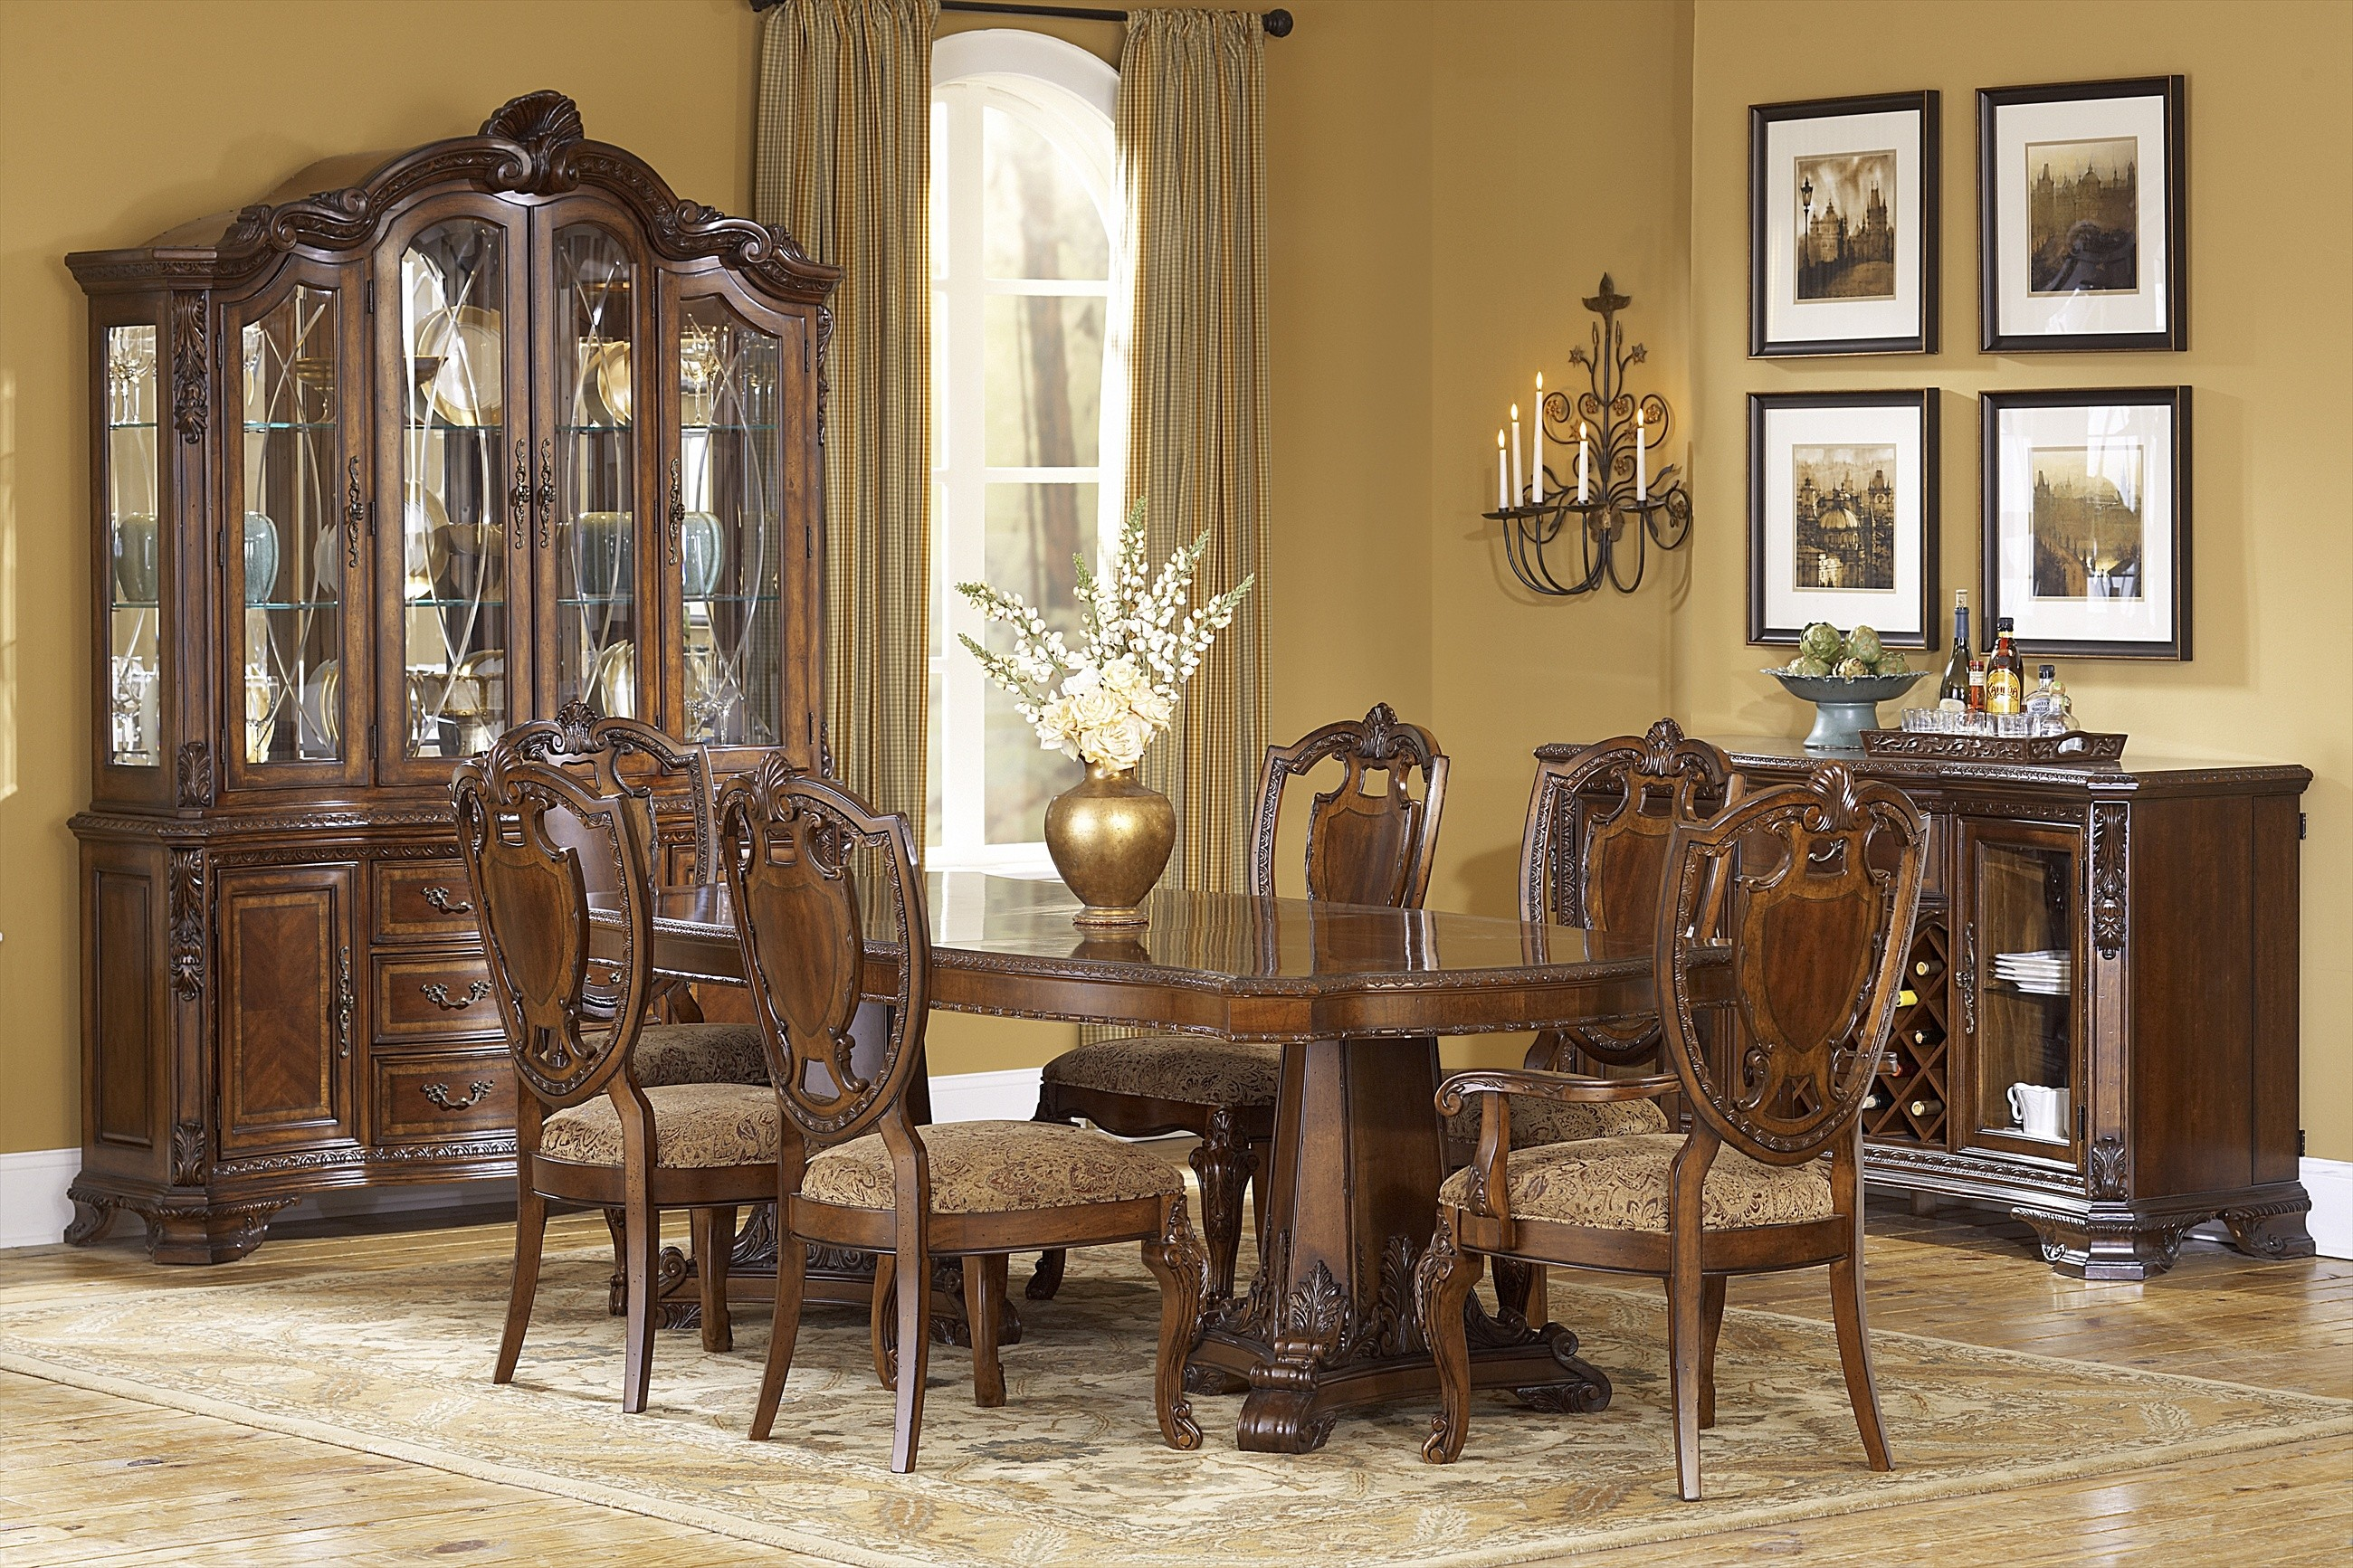 Best Formal Dining Room Sets For Home Design: Nice Formal Dining Room Sets  With Buffet